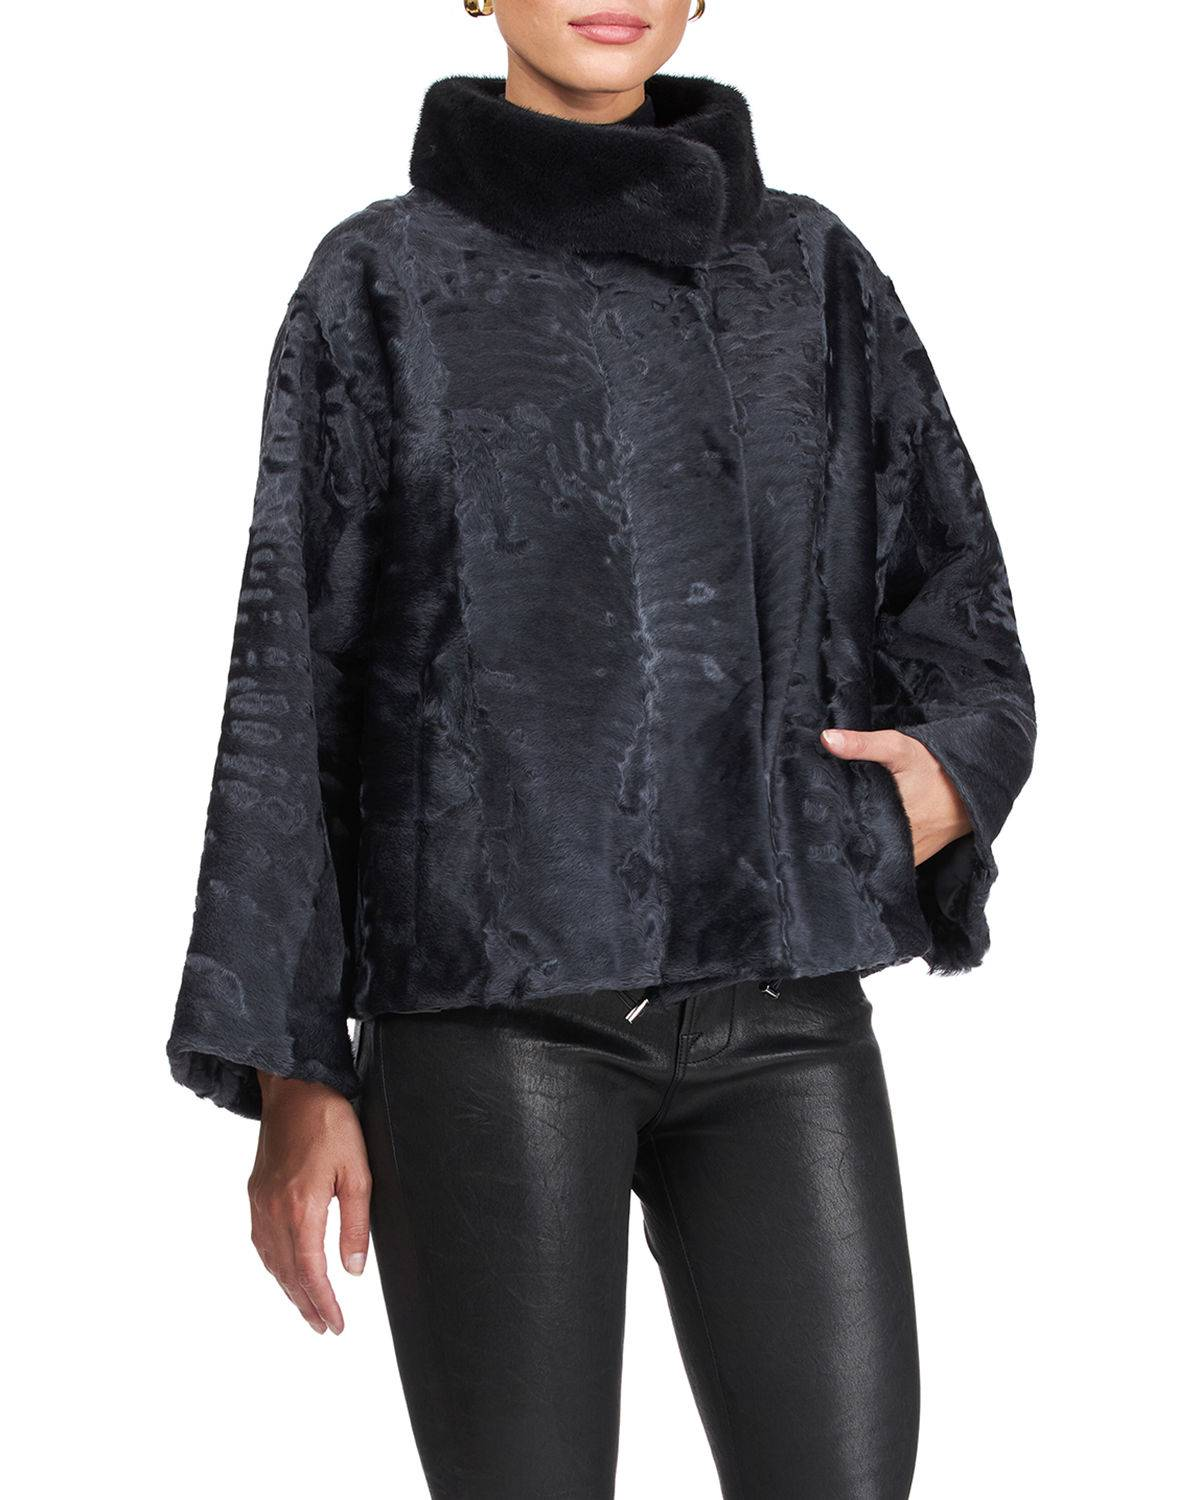 Gorski Lamb Jacket With Mink Collar - Size: Small